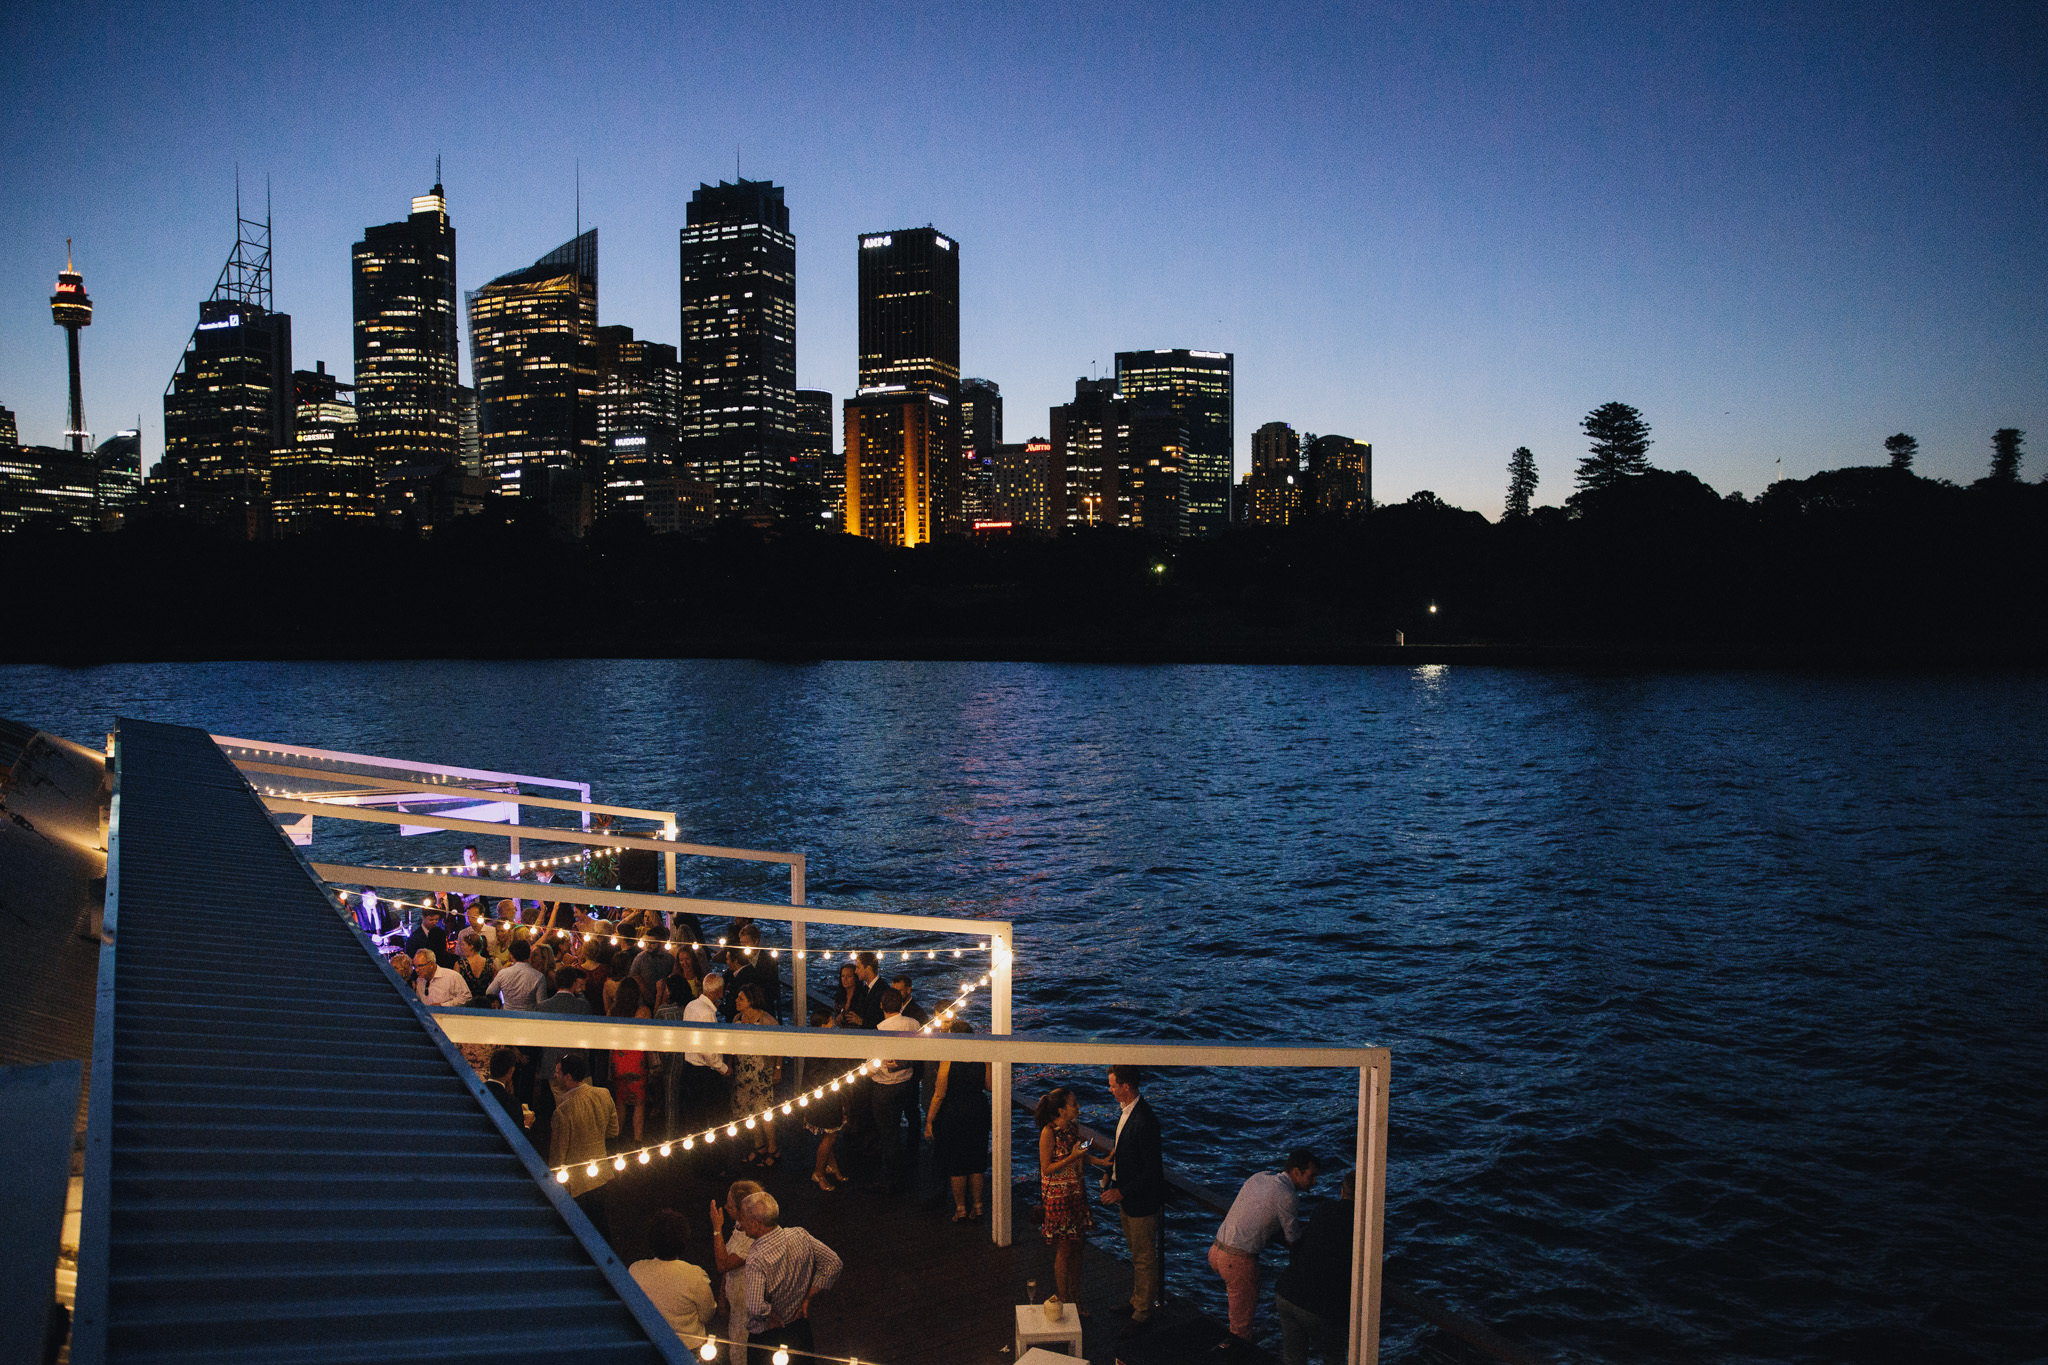 The Island Sydney Harbour at night for a wedding